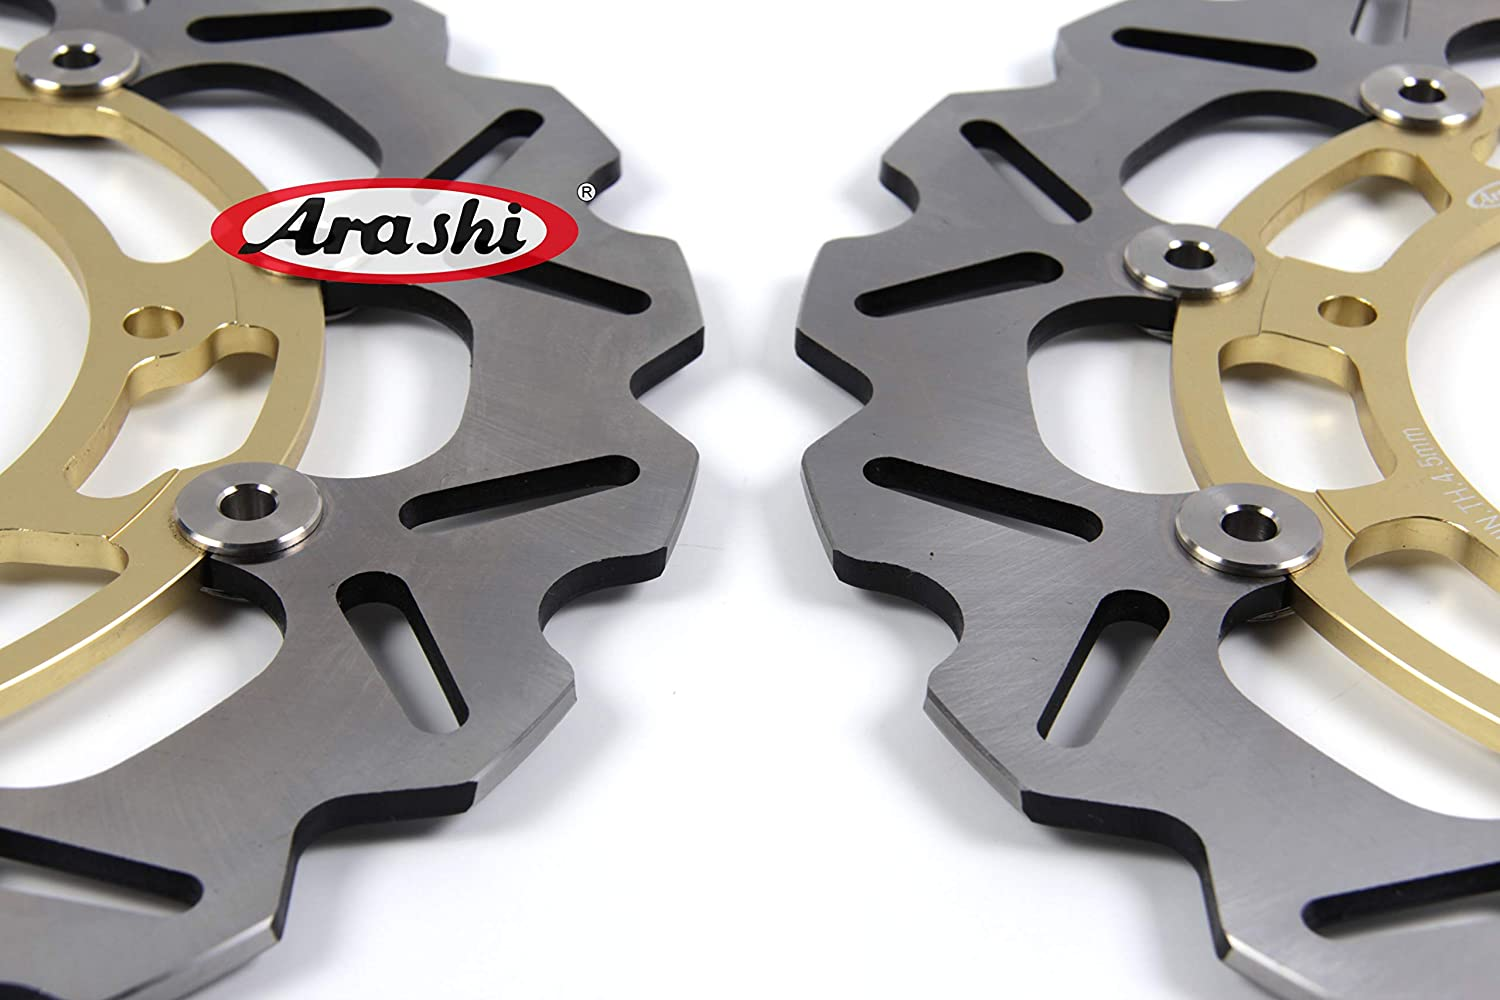 Arashi Front Rear Brake Disc Rotors for YAMAHA YZF R6 2005-2015 Motorcycle Replacement Accessories YZF-R6 2006 2007 2008 2009 2010 2011 2012 2013 2014 Black YZF-R1 R1